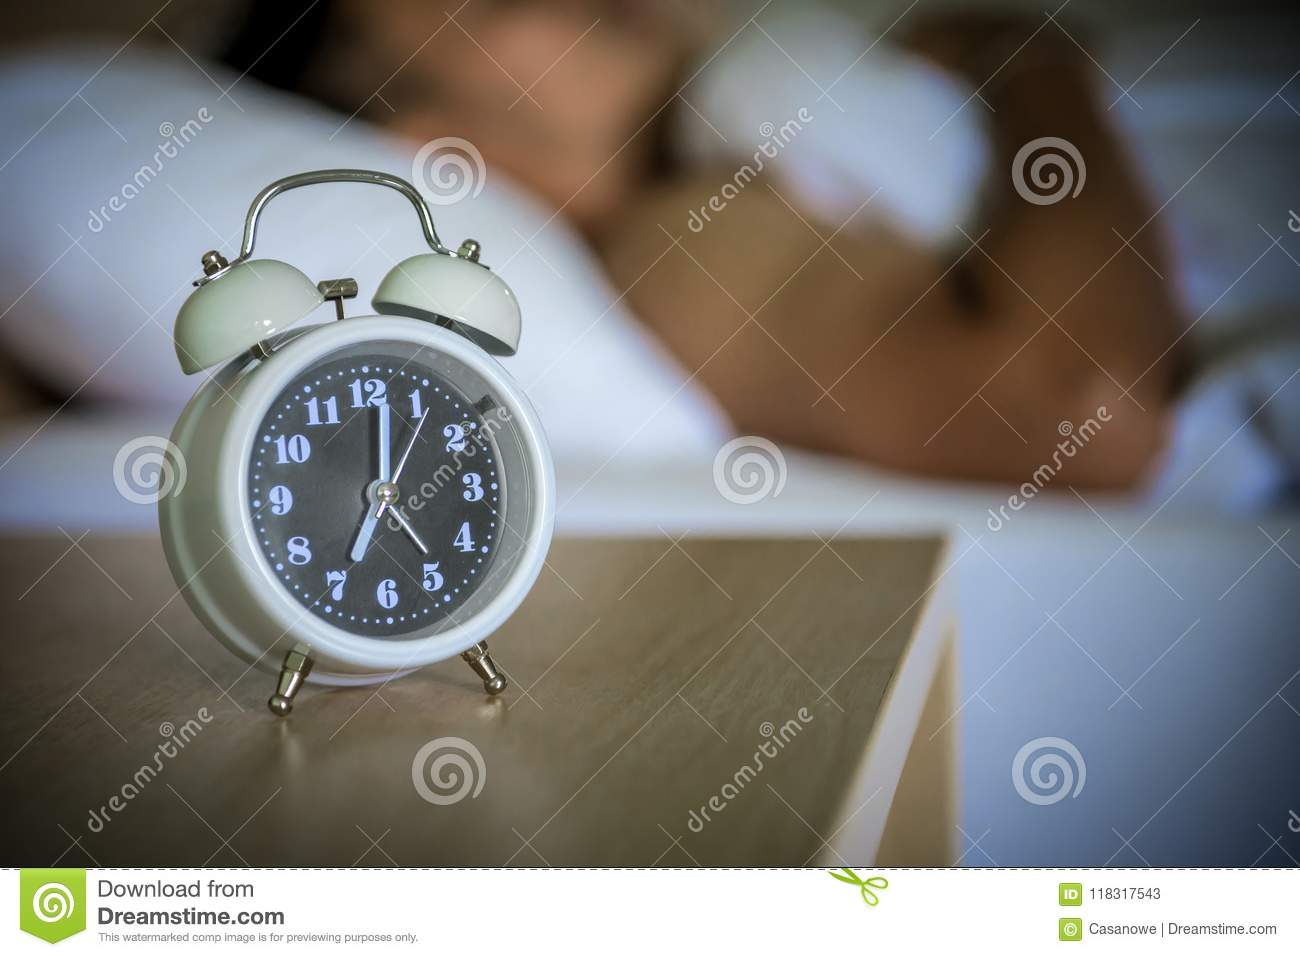 Alarm Clock On The Bed In Bedroom. Stock Image - Image of ...